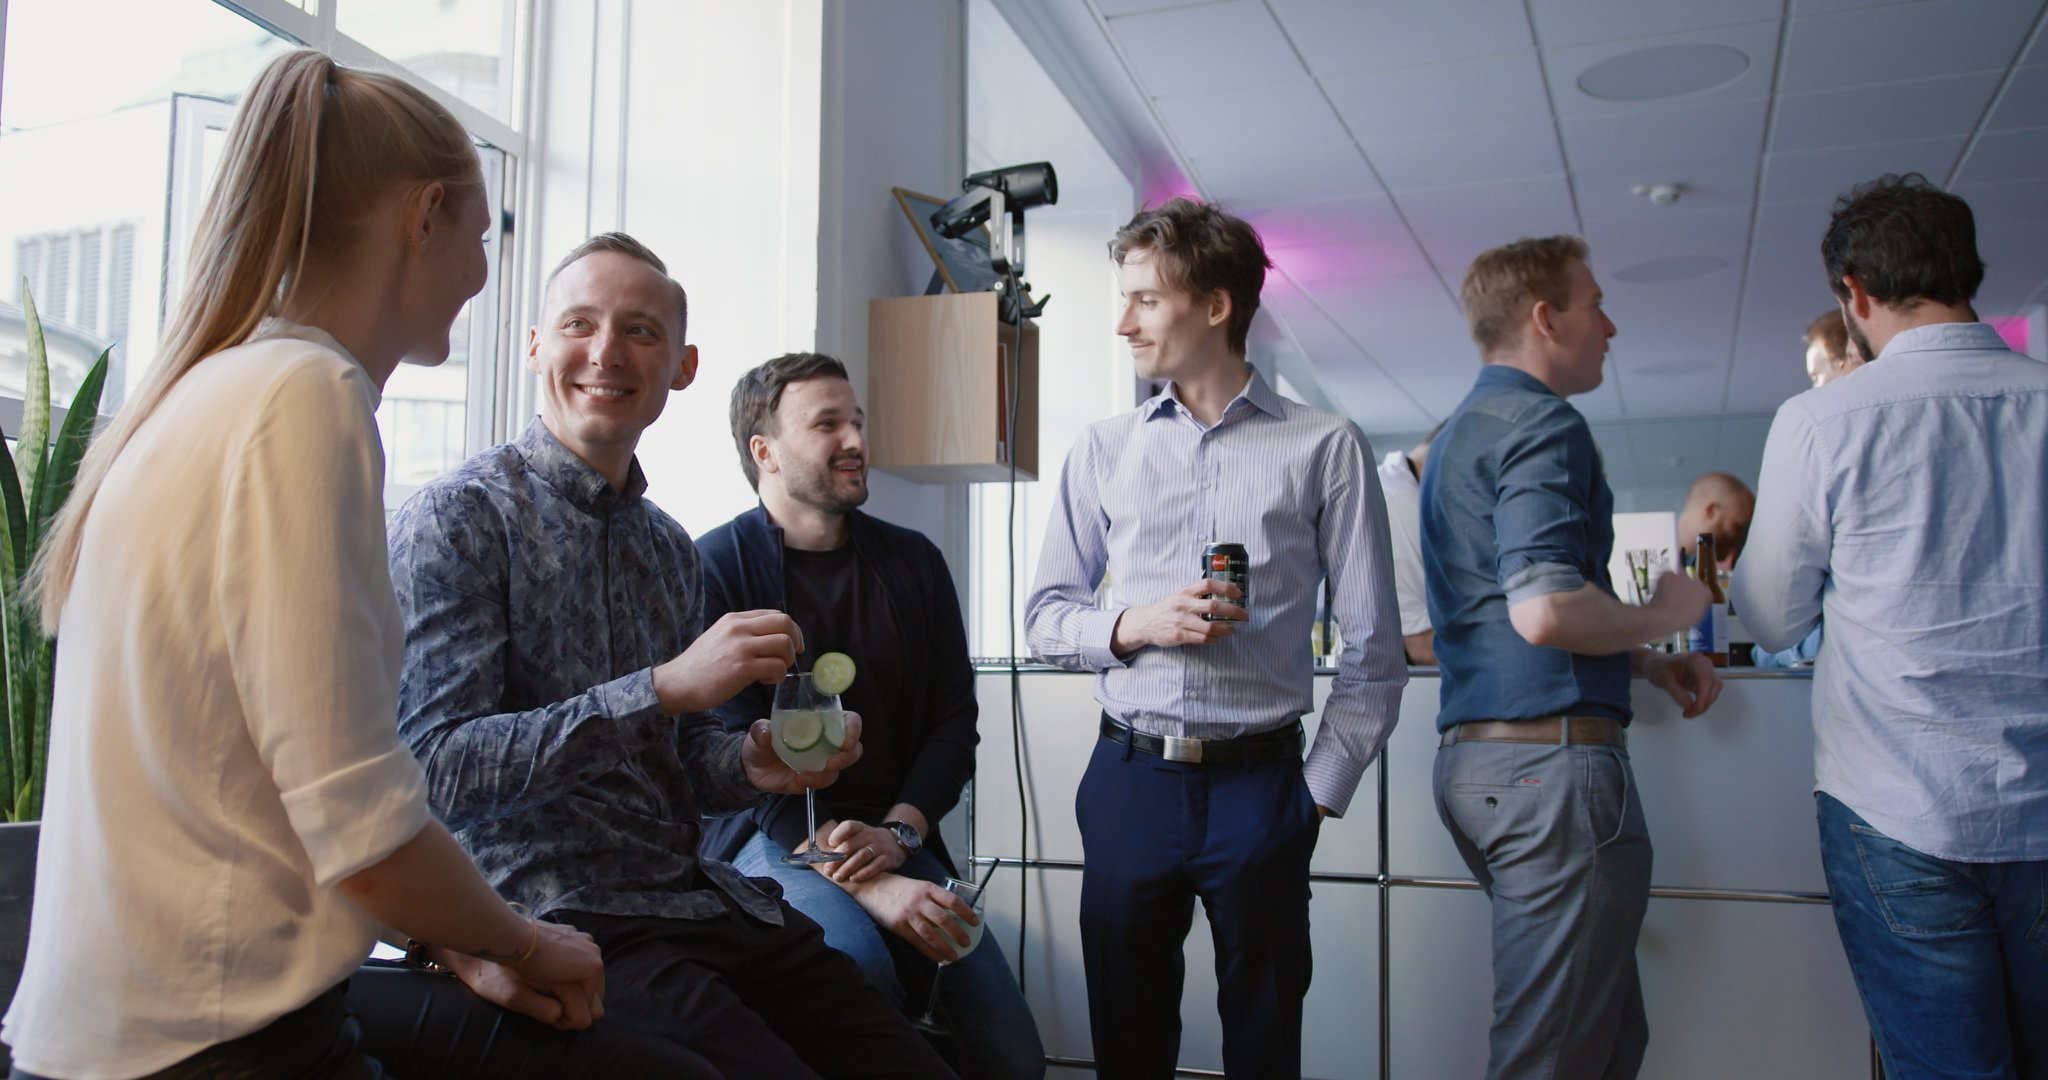 Employees at Templafy holding a drink at the office party